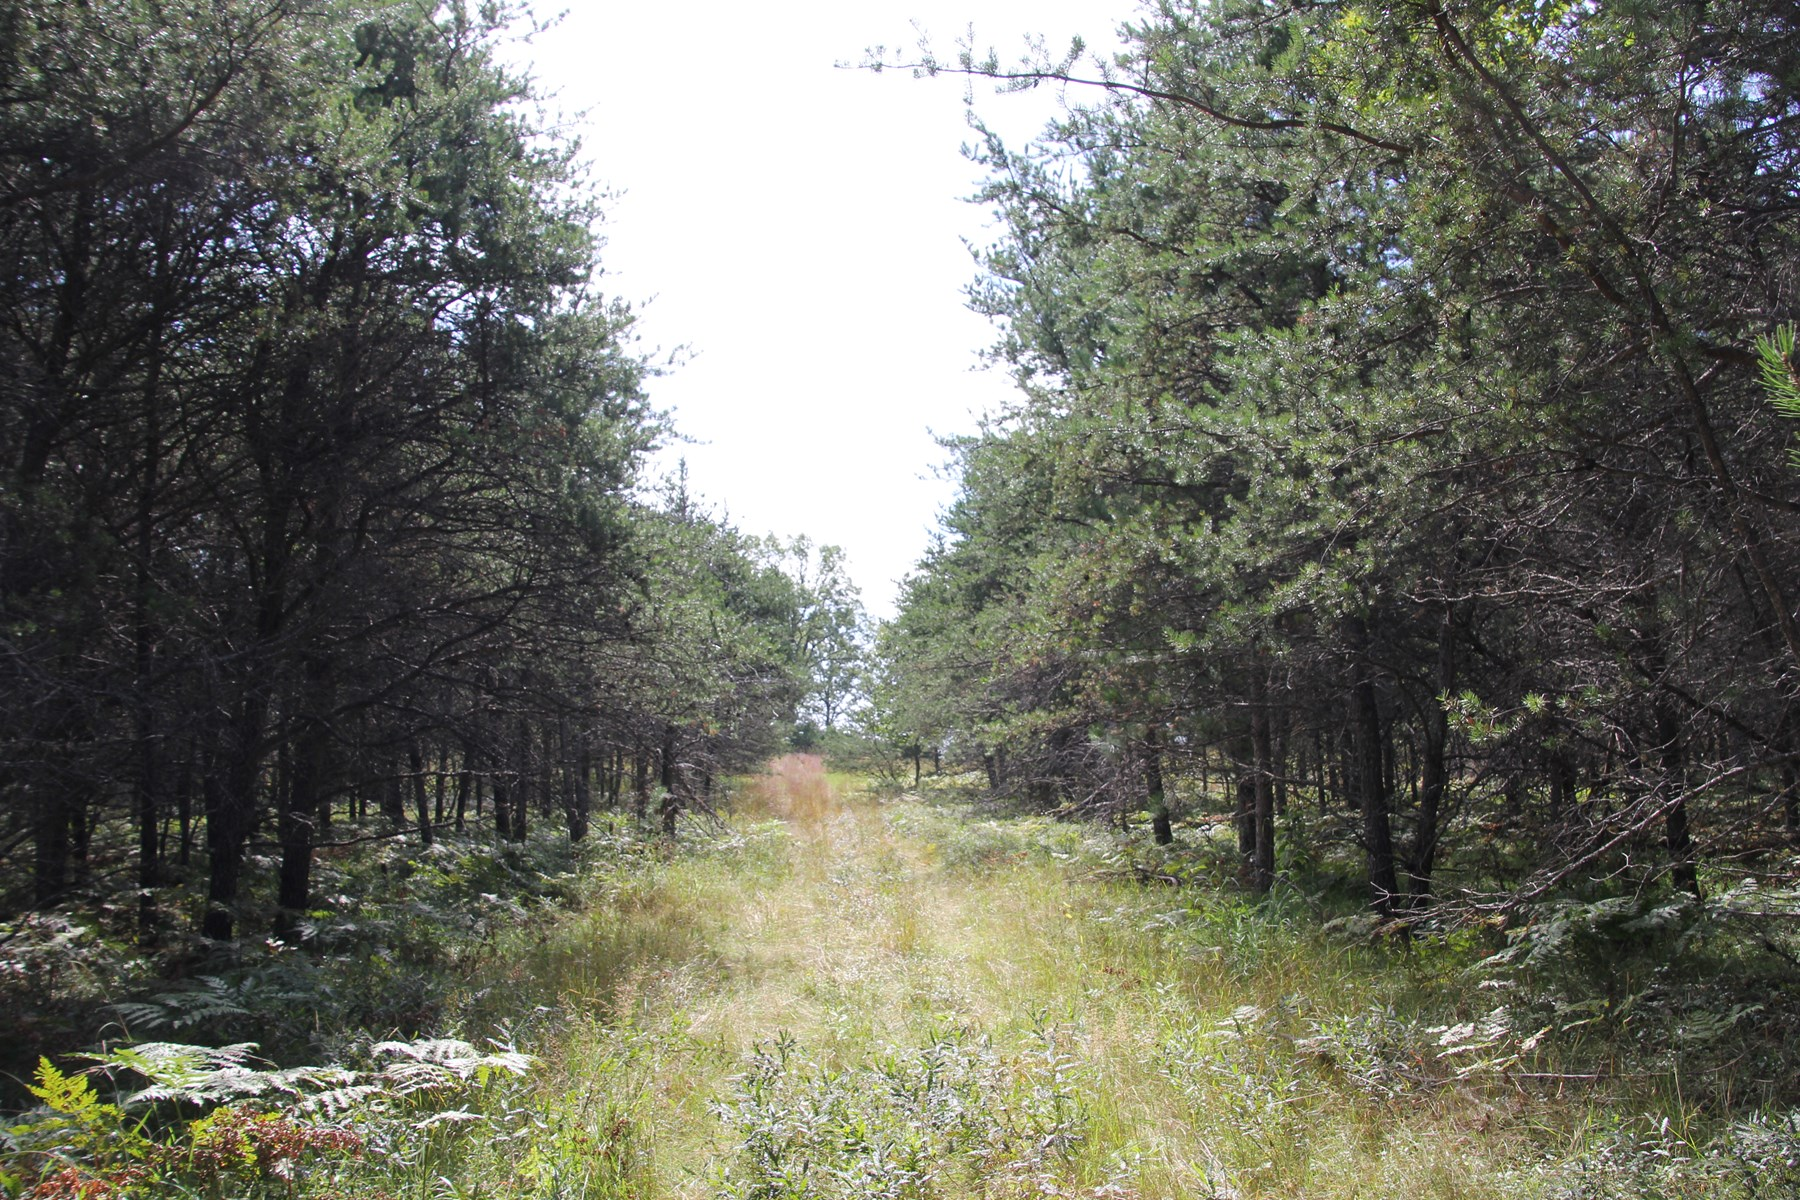 75 Acres of Hunting Property near Curran MI